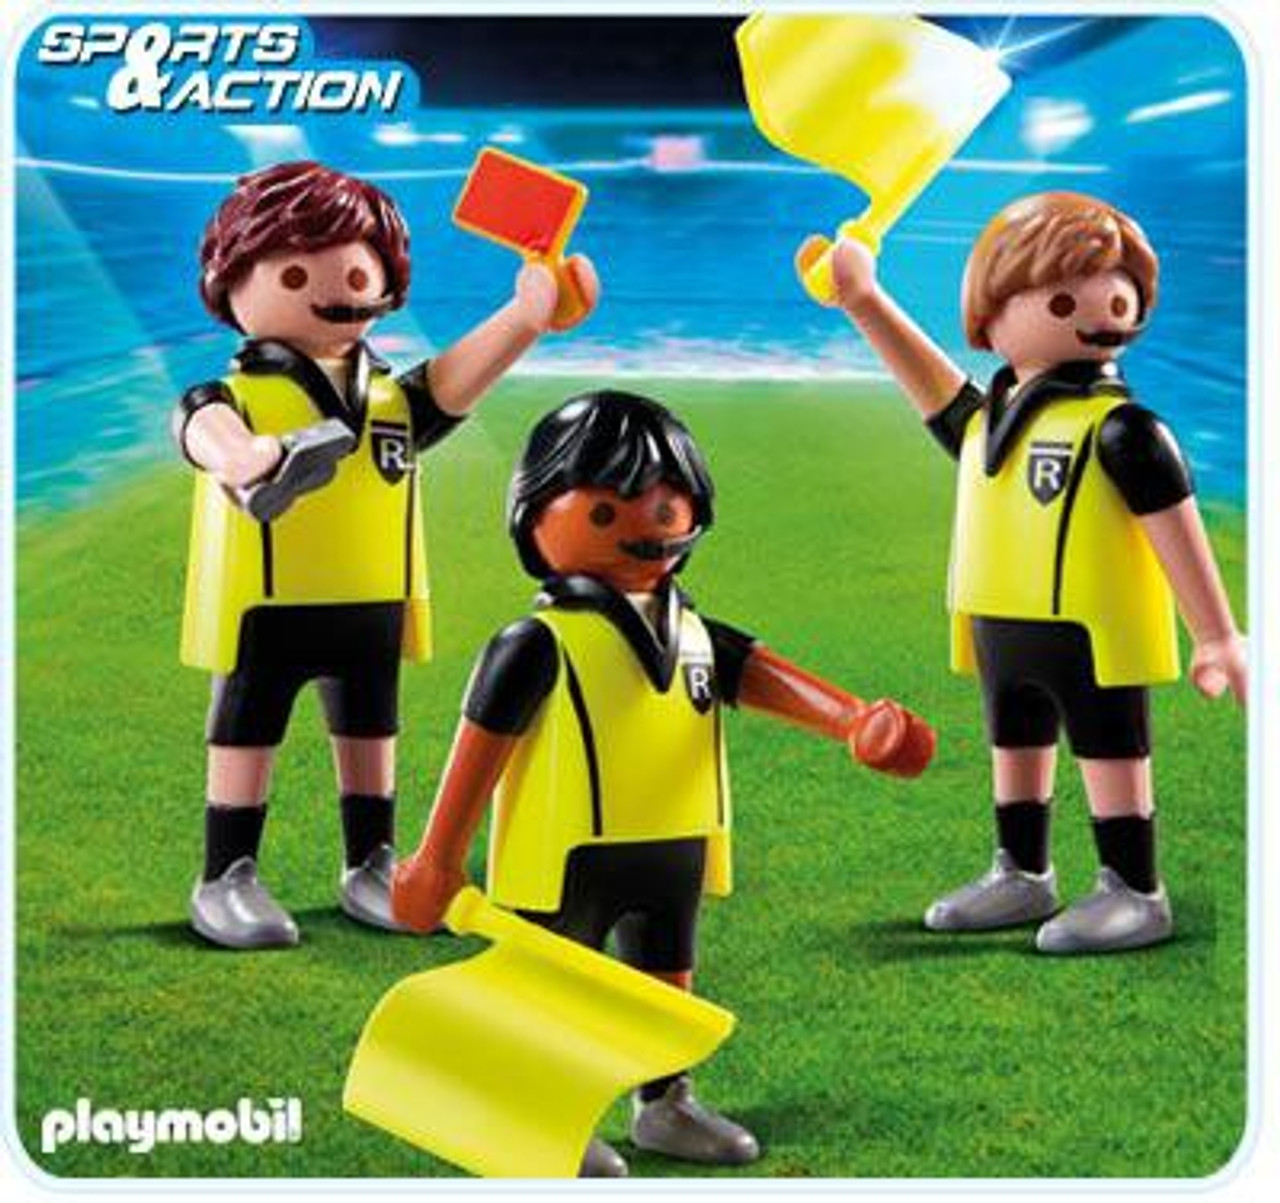 Playmobil Sports & Action Referees Set #4728